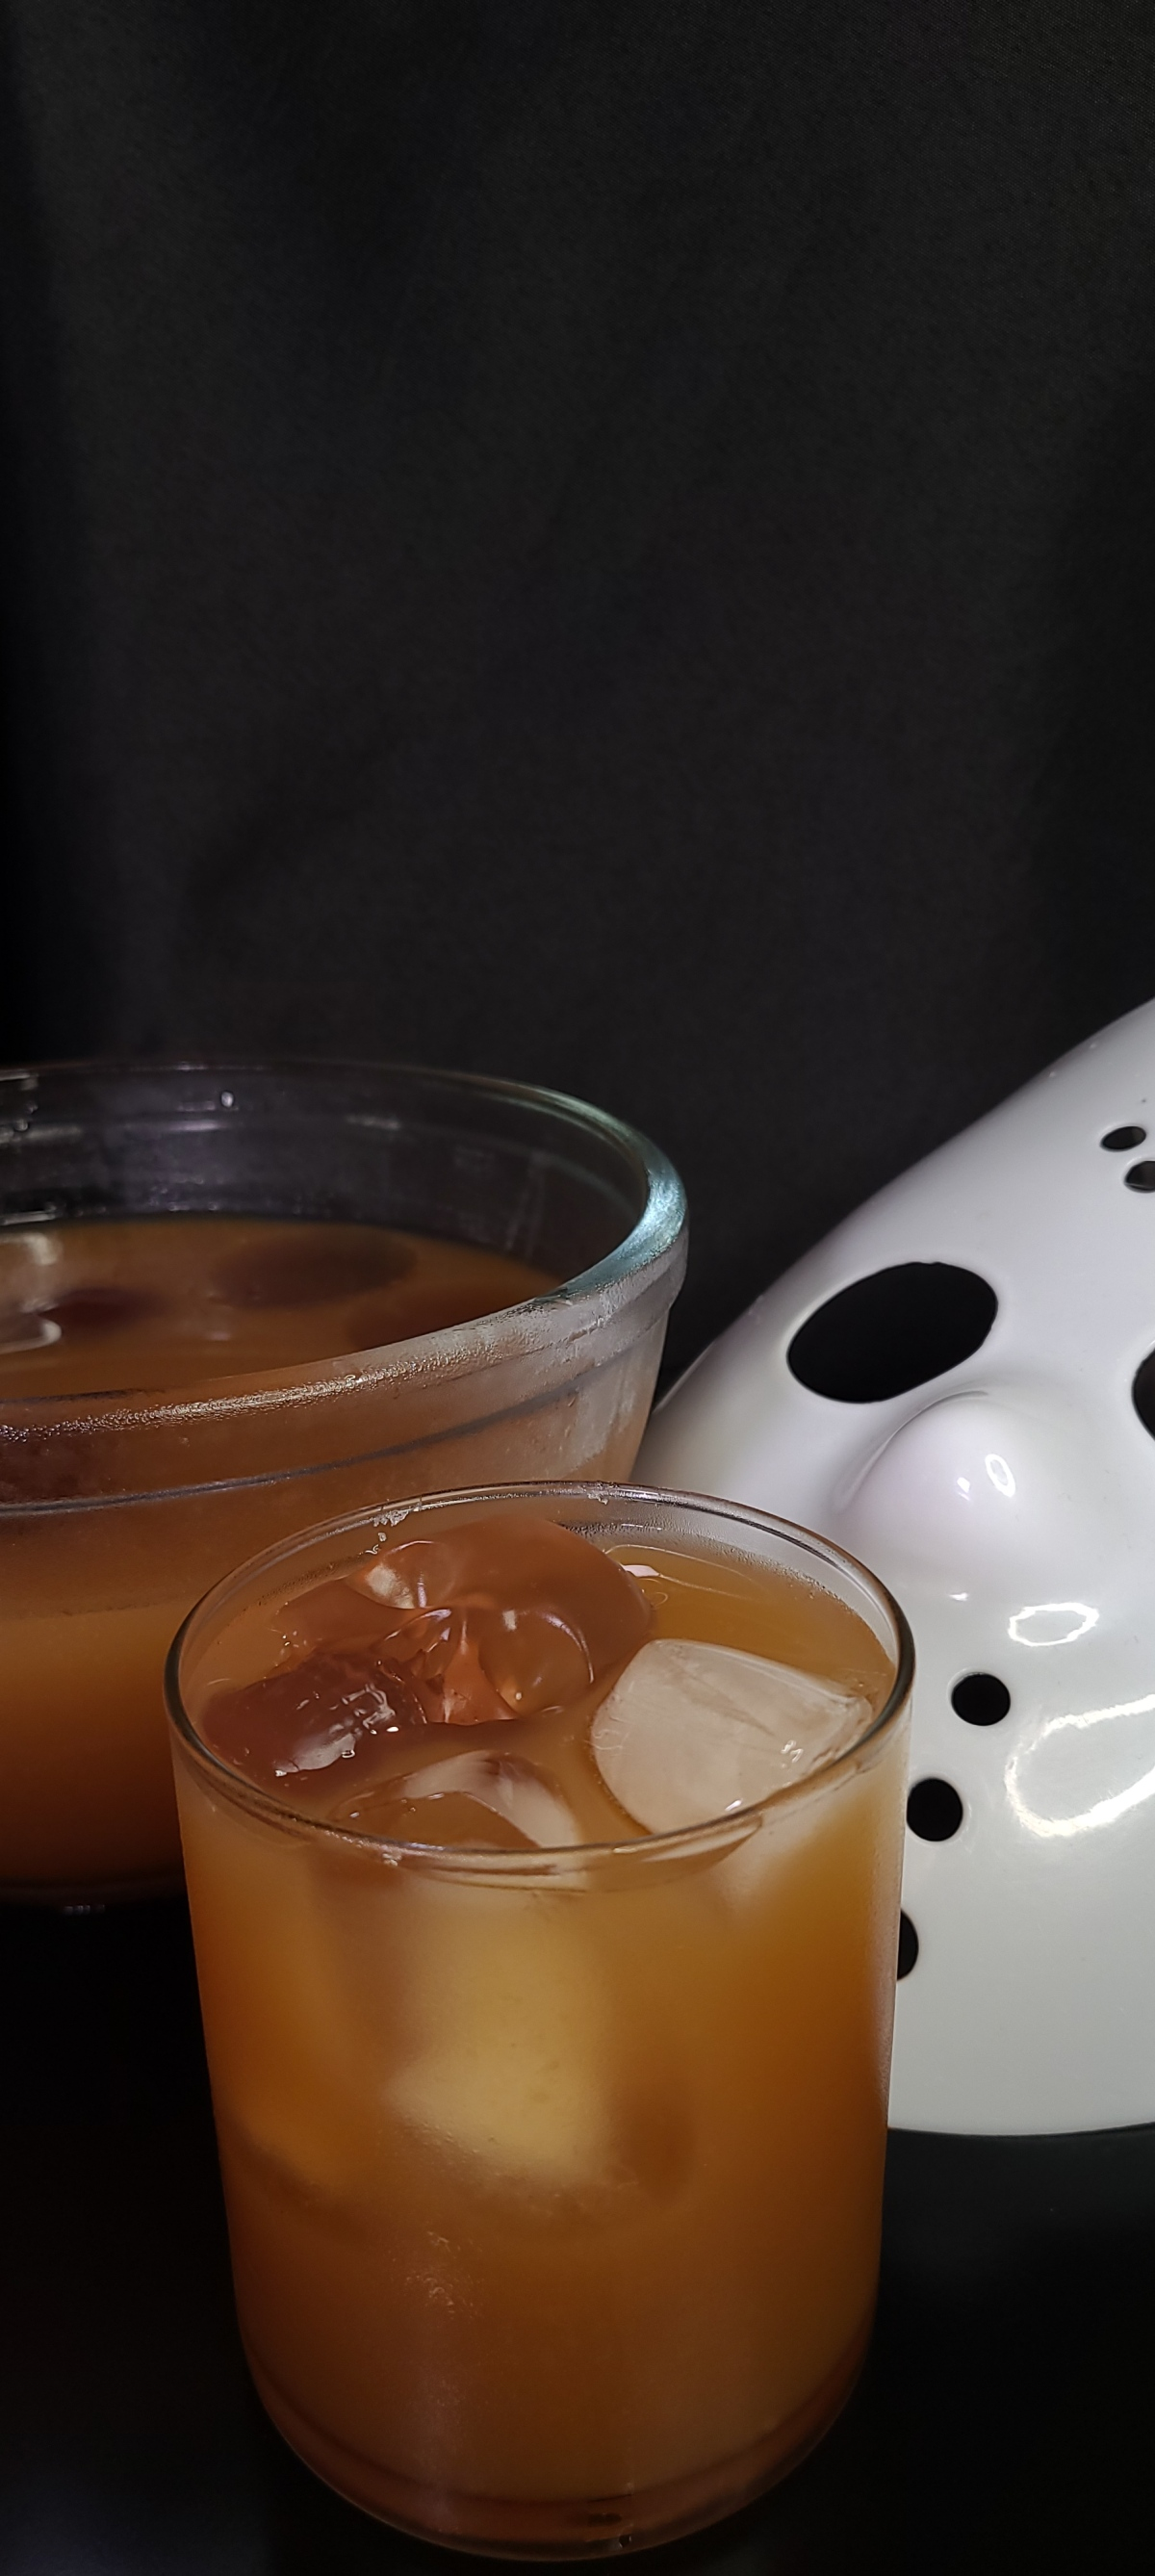 The Jason, Listen to Mother's Shrunken Head sits on a black table with a black background and a hockey mask. A punch bowl also sits in the background with jello skulls floating on top. The drink has one skull with ice.